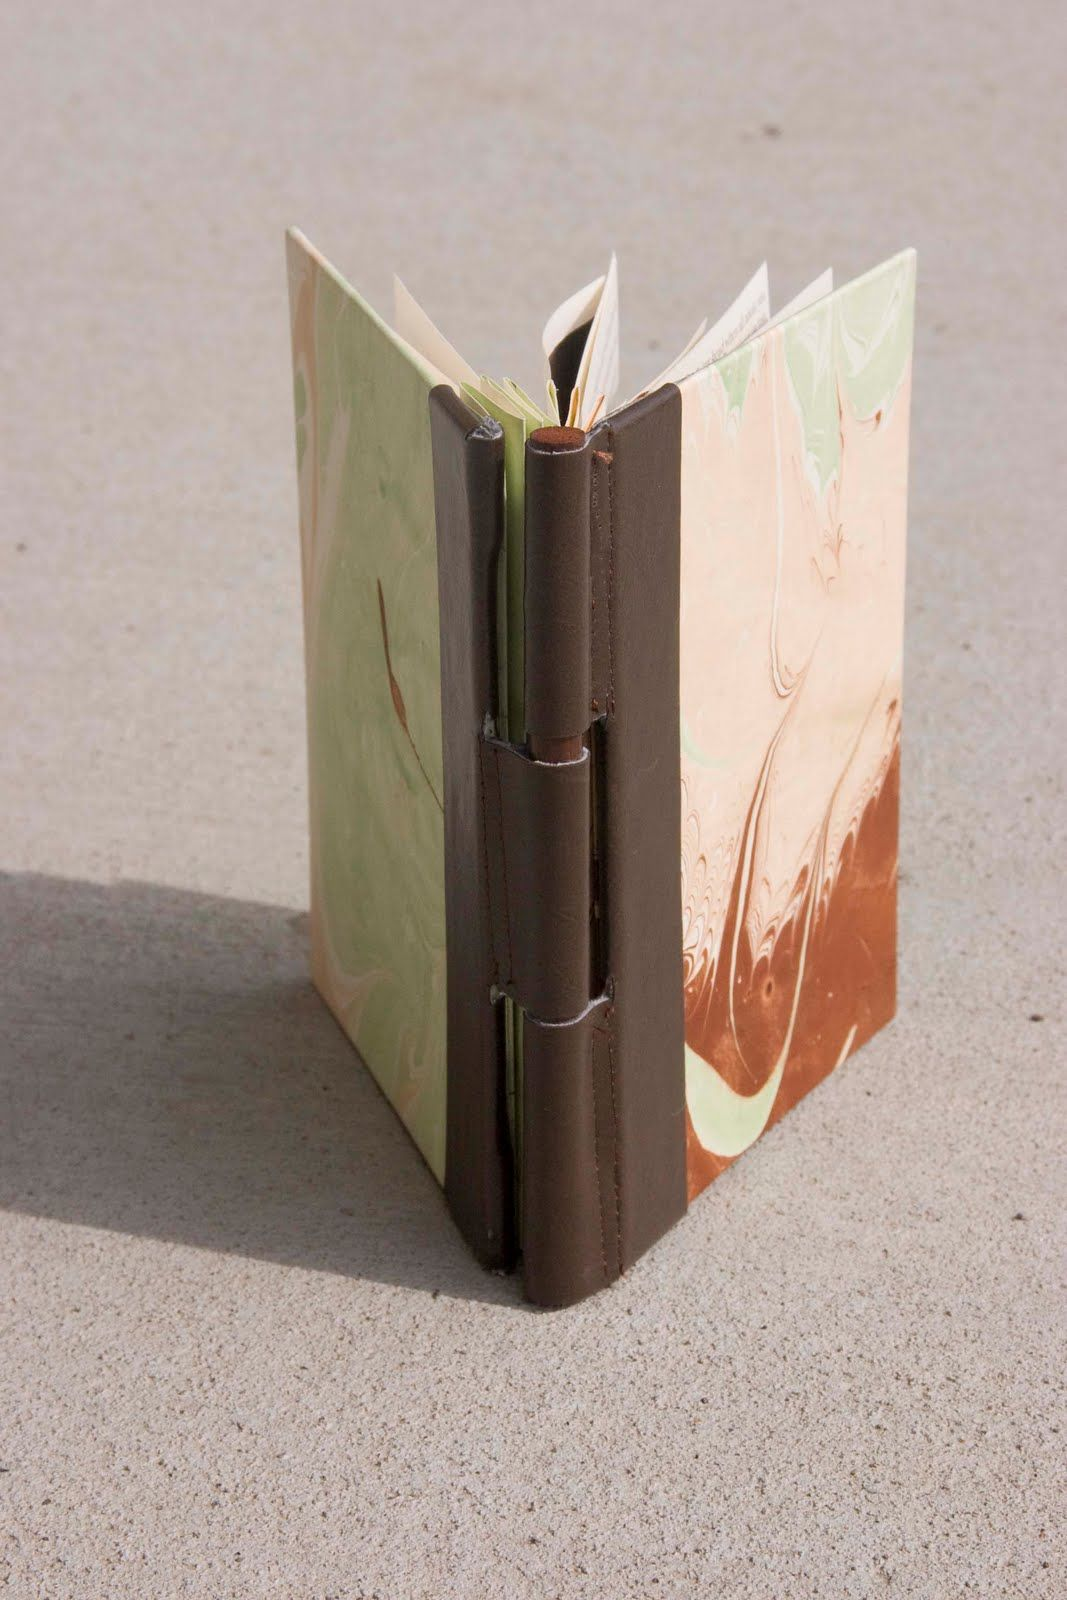 I Did A Combination Between A Flag Accordian And A Piano Hinge Book The Steps Are Pretty Easy Basic Book 1 Cover You Book Making Handmade Books Book Crafts